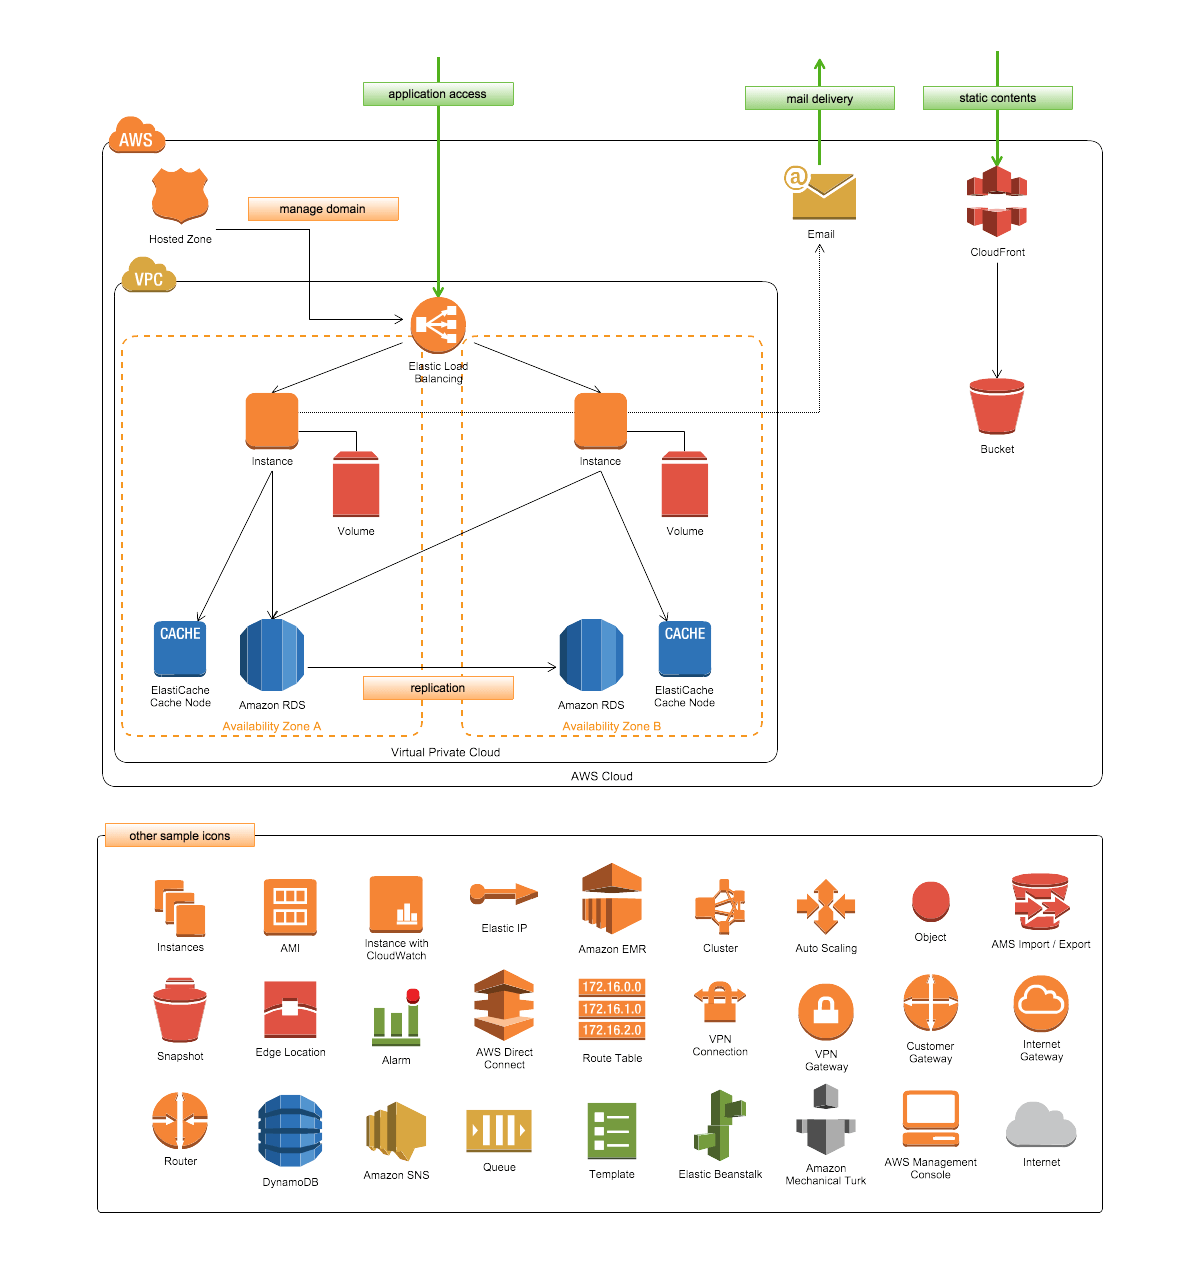 Check out some examples of flowcharts wireframes network diagrams check out flowcharts uml diagrams wireframes network diagrams and others models you can make and share securely using cacoo diagramming software ccuart Image collections